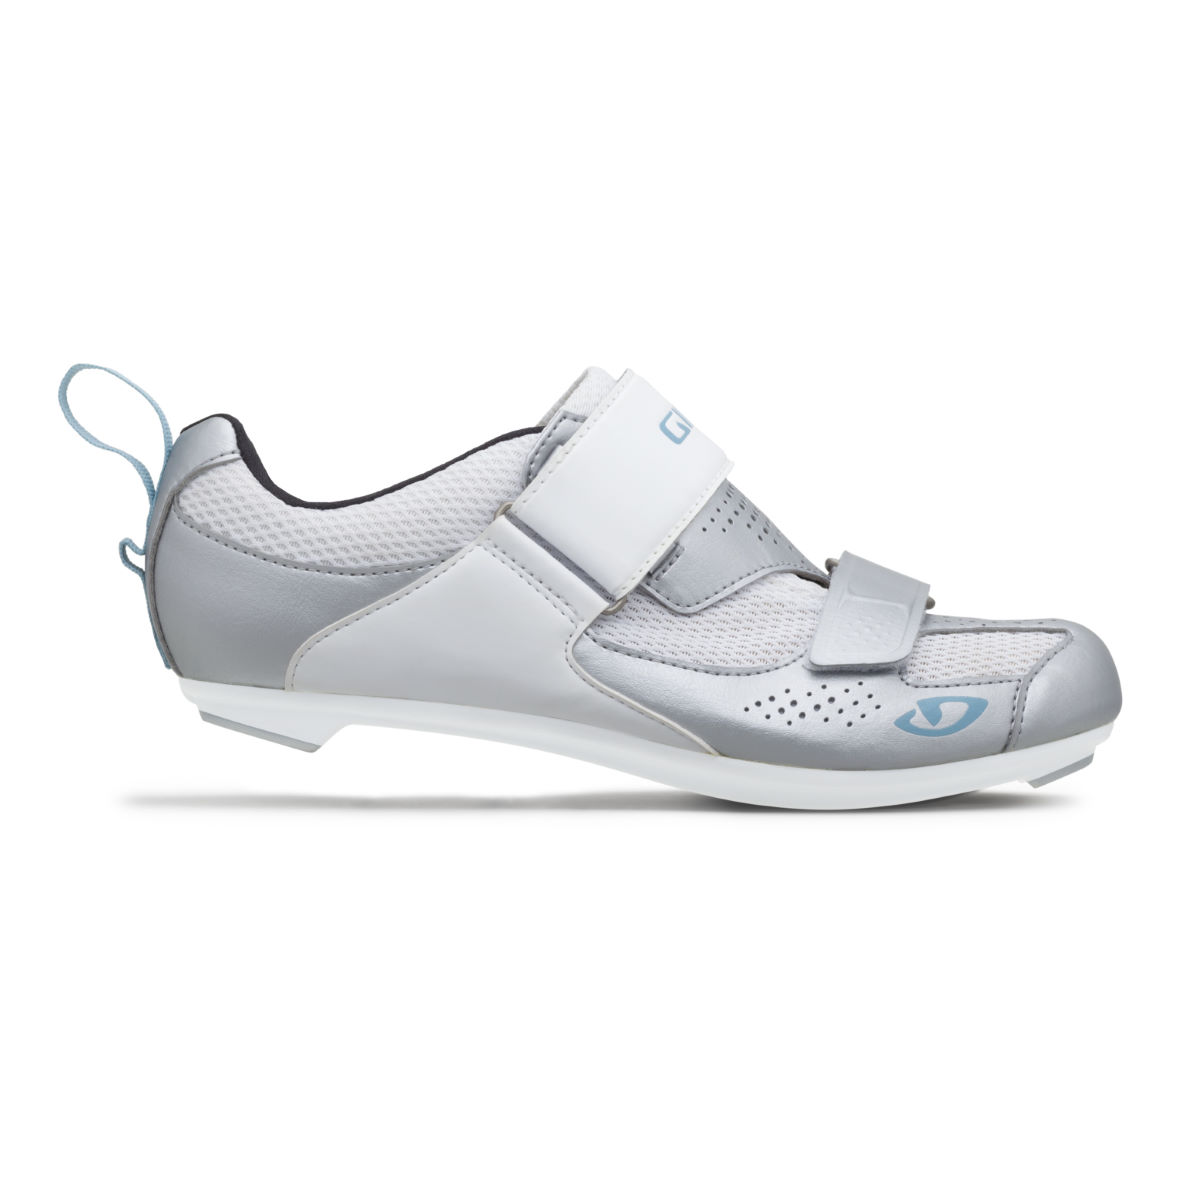 Giro Flynt triathlon shoes for women - Triathlon shoes